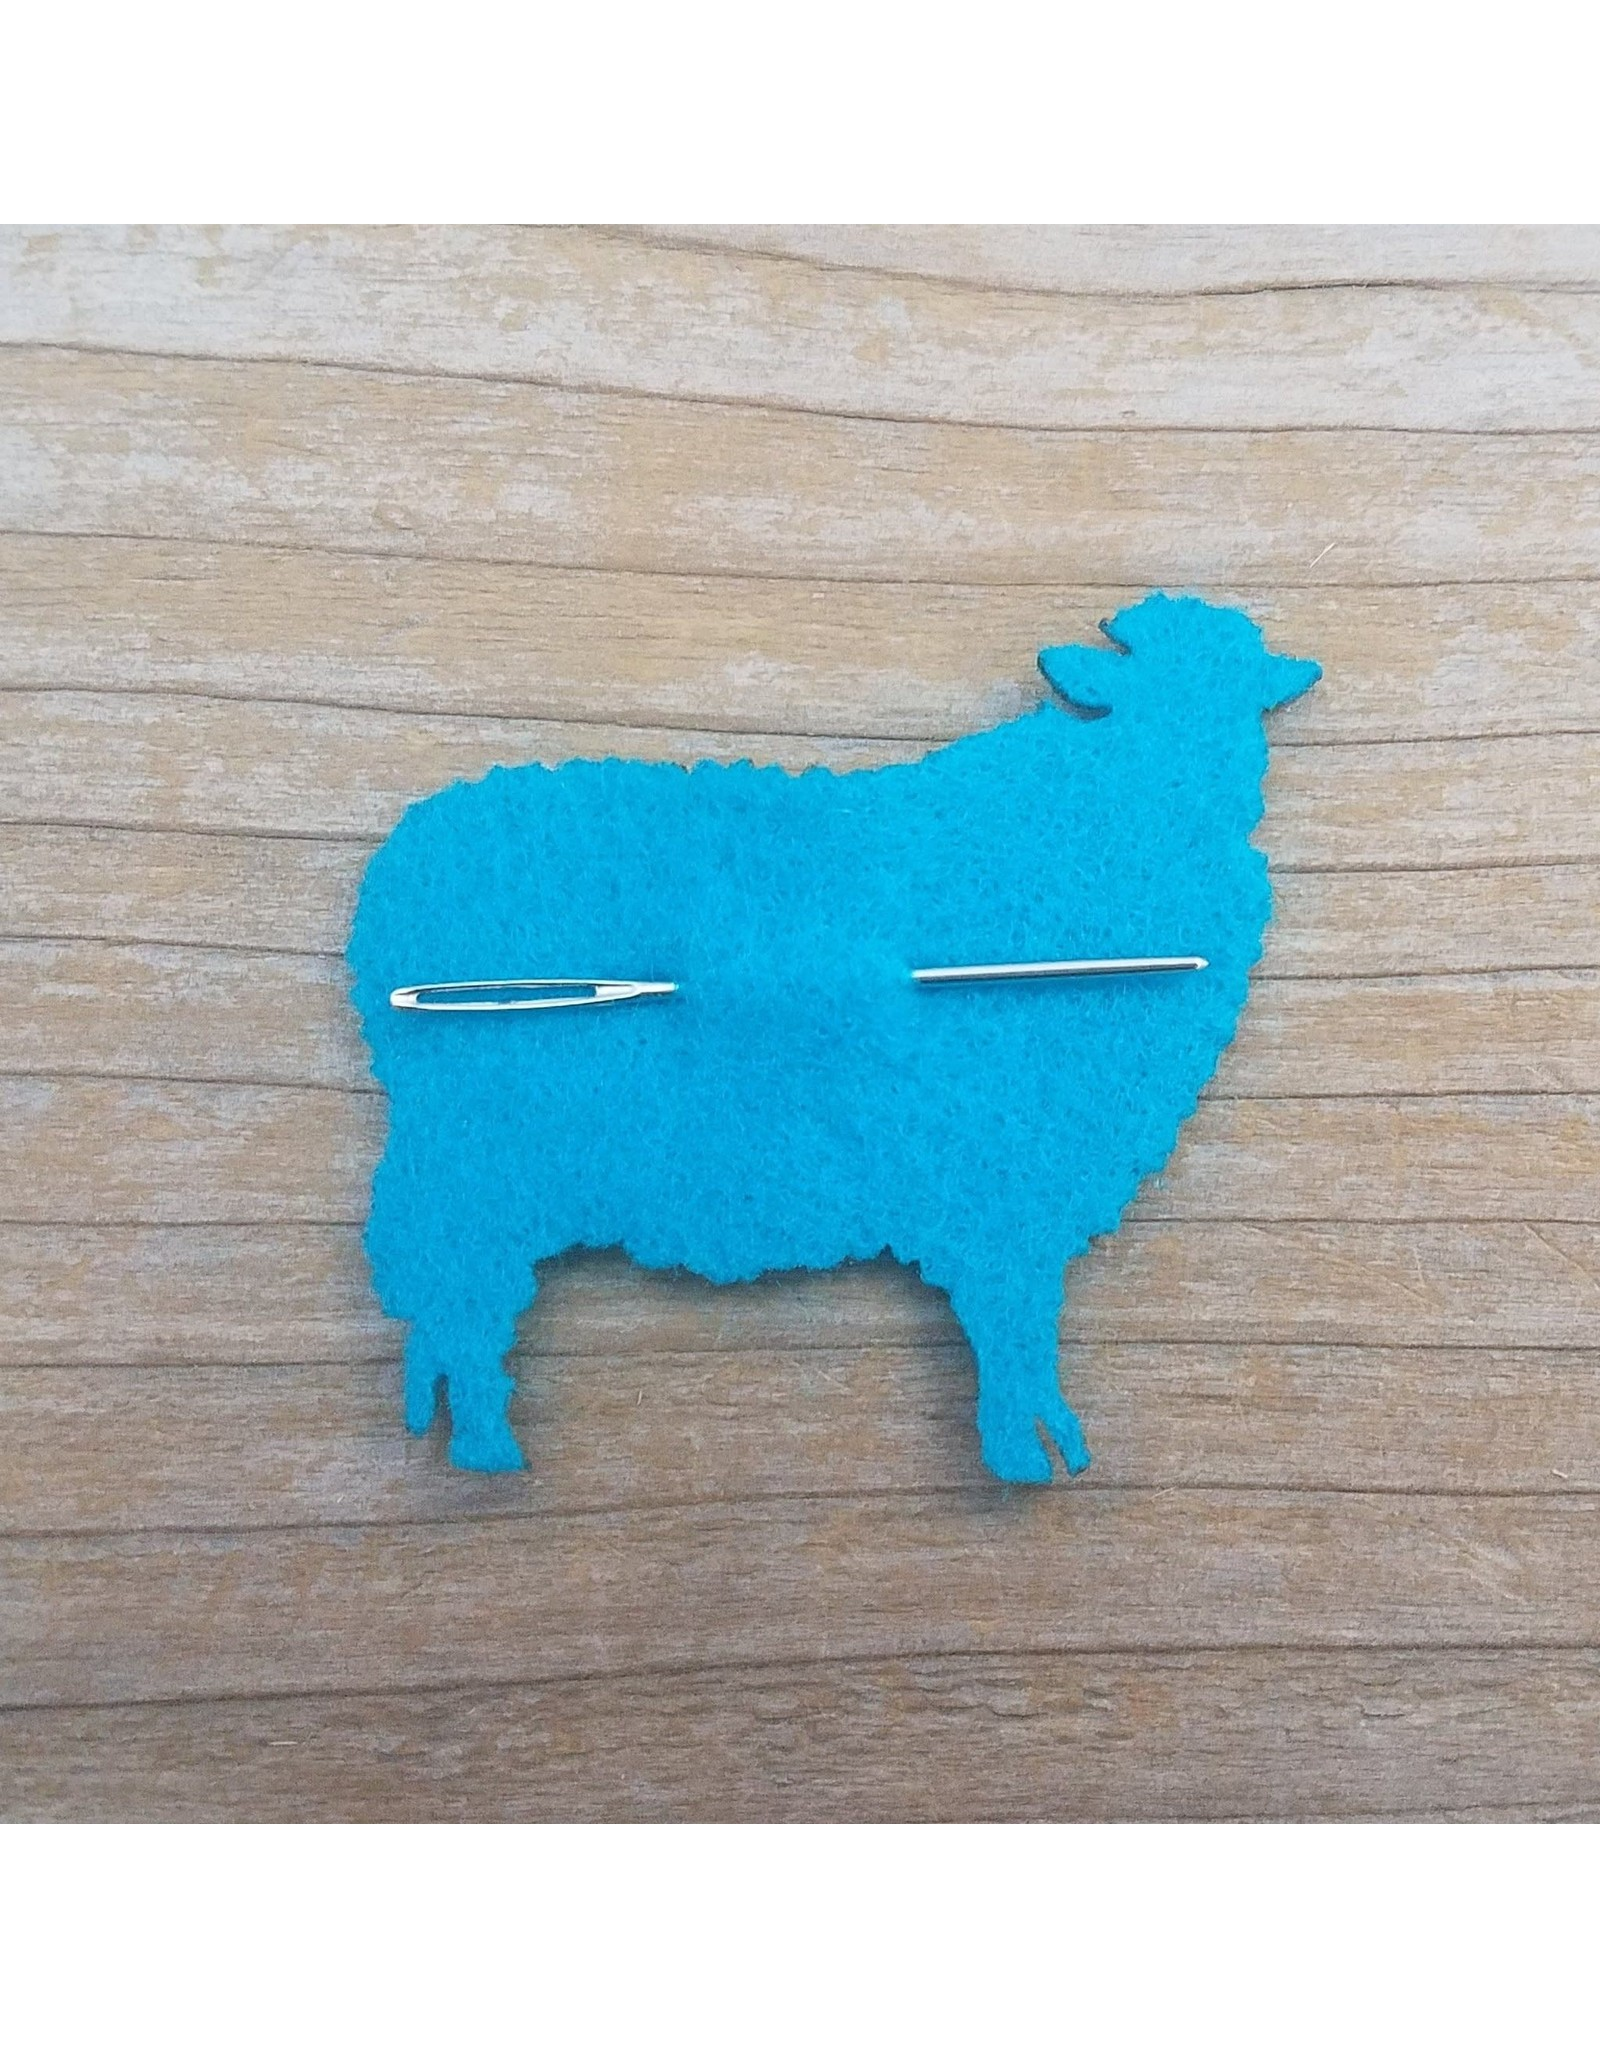 Tapestry Needle with Felt Sheep Holder by Katrinkles